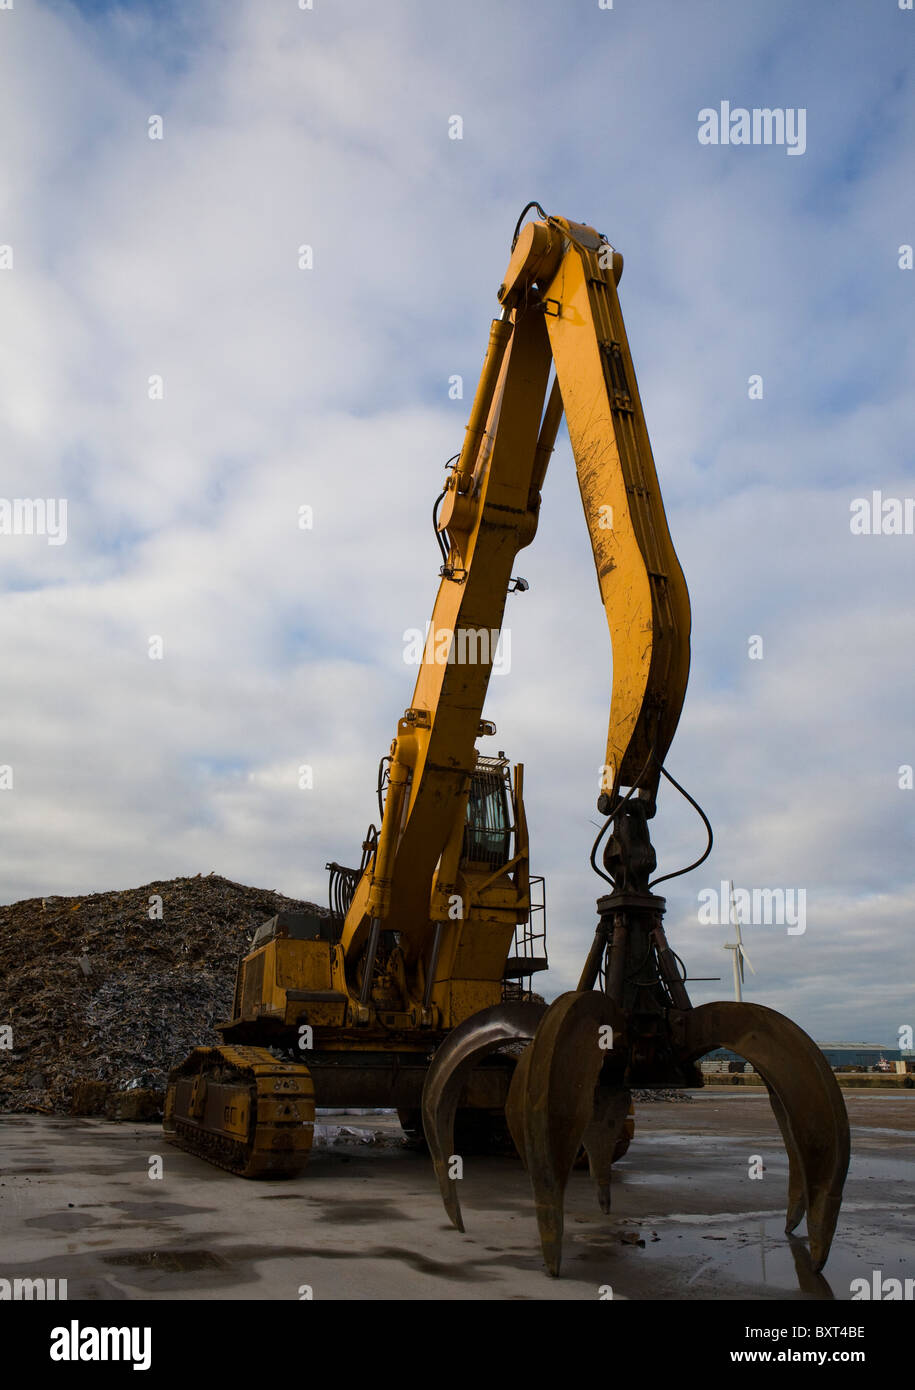 Liebherr Grab, Scrap and Salvaged Metal for Recycling   Metals and Materials and Equipment, Liverpool, Merseyside, Stock Photo